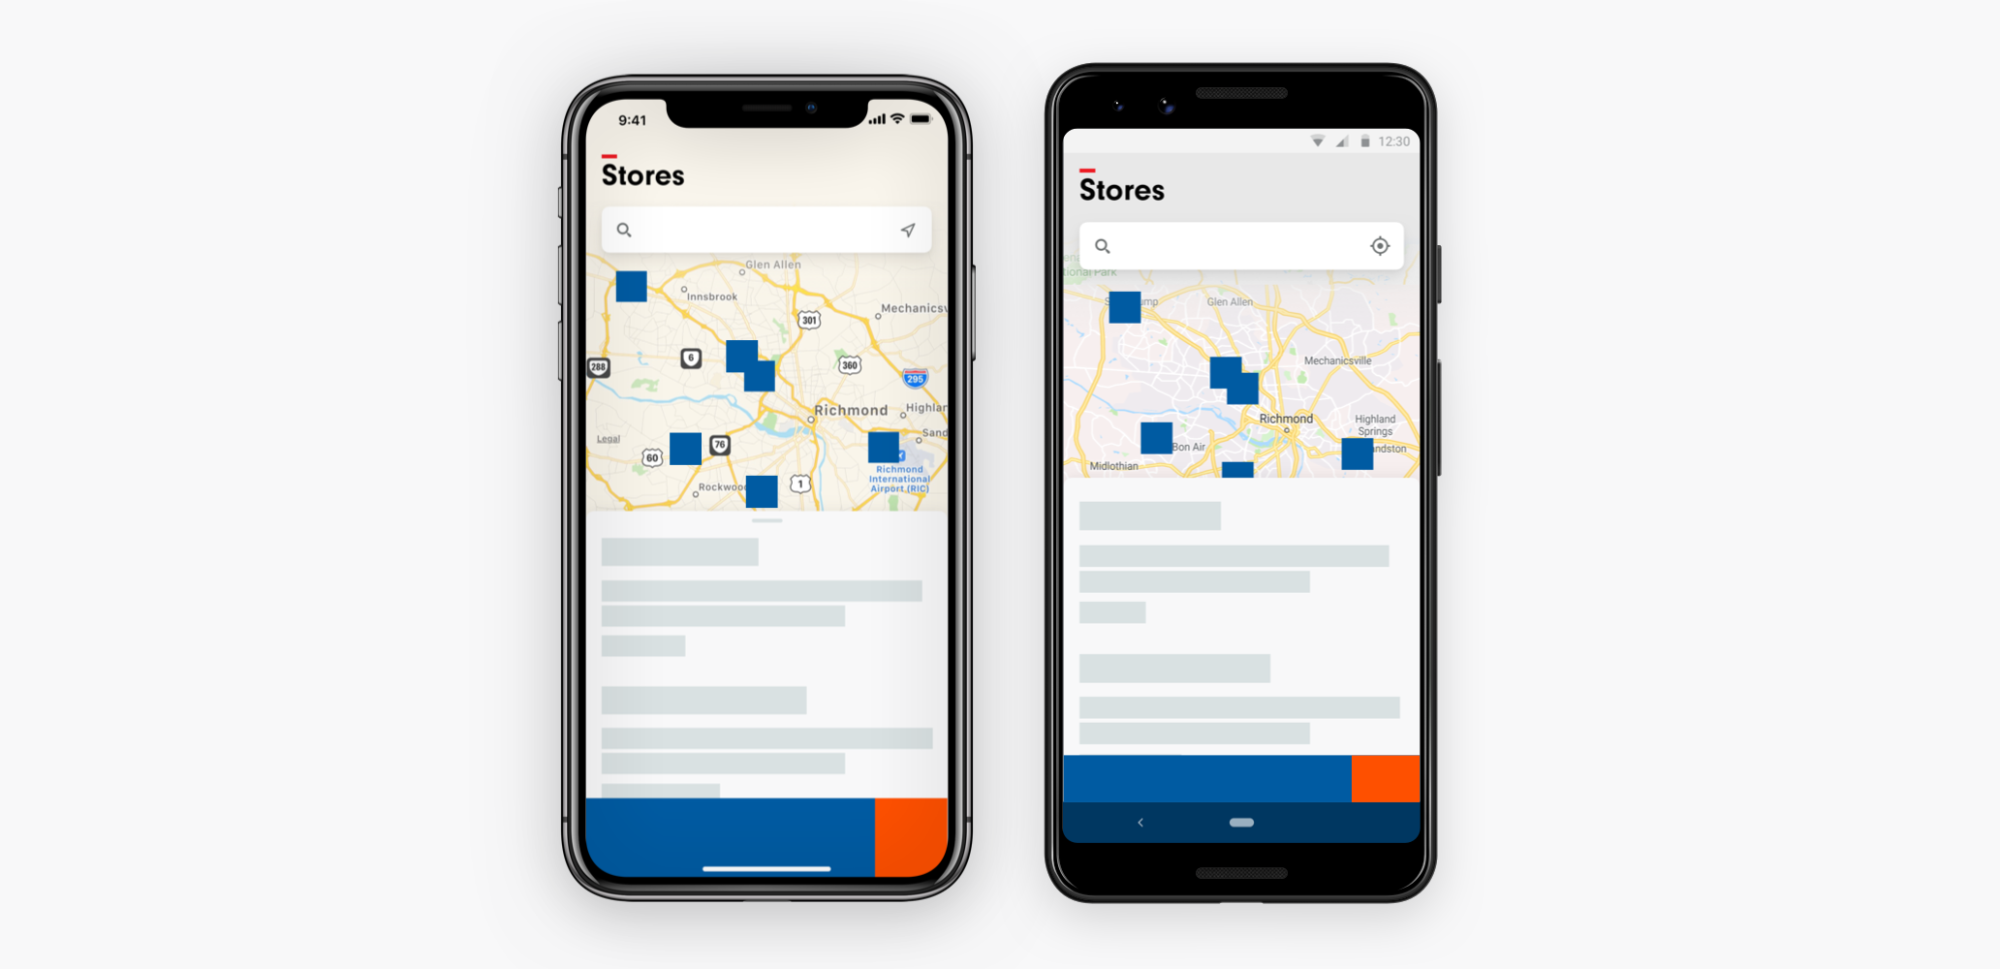 iOS and Android screen showing stores search